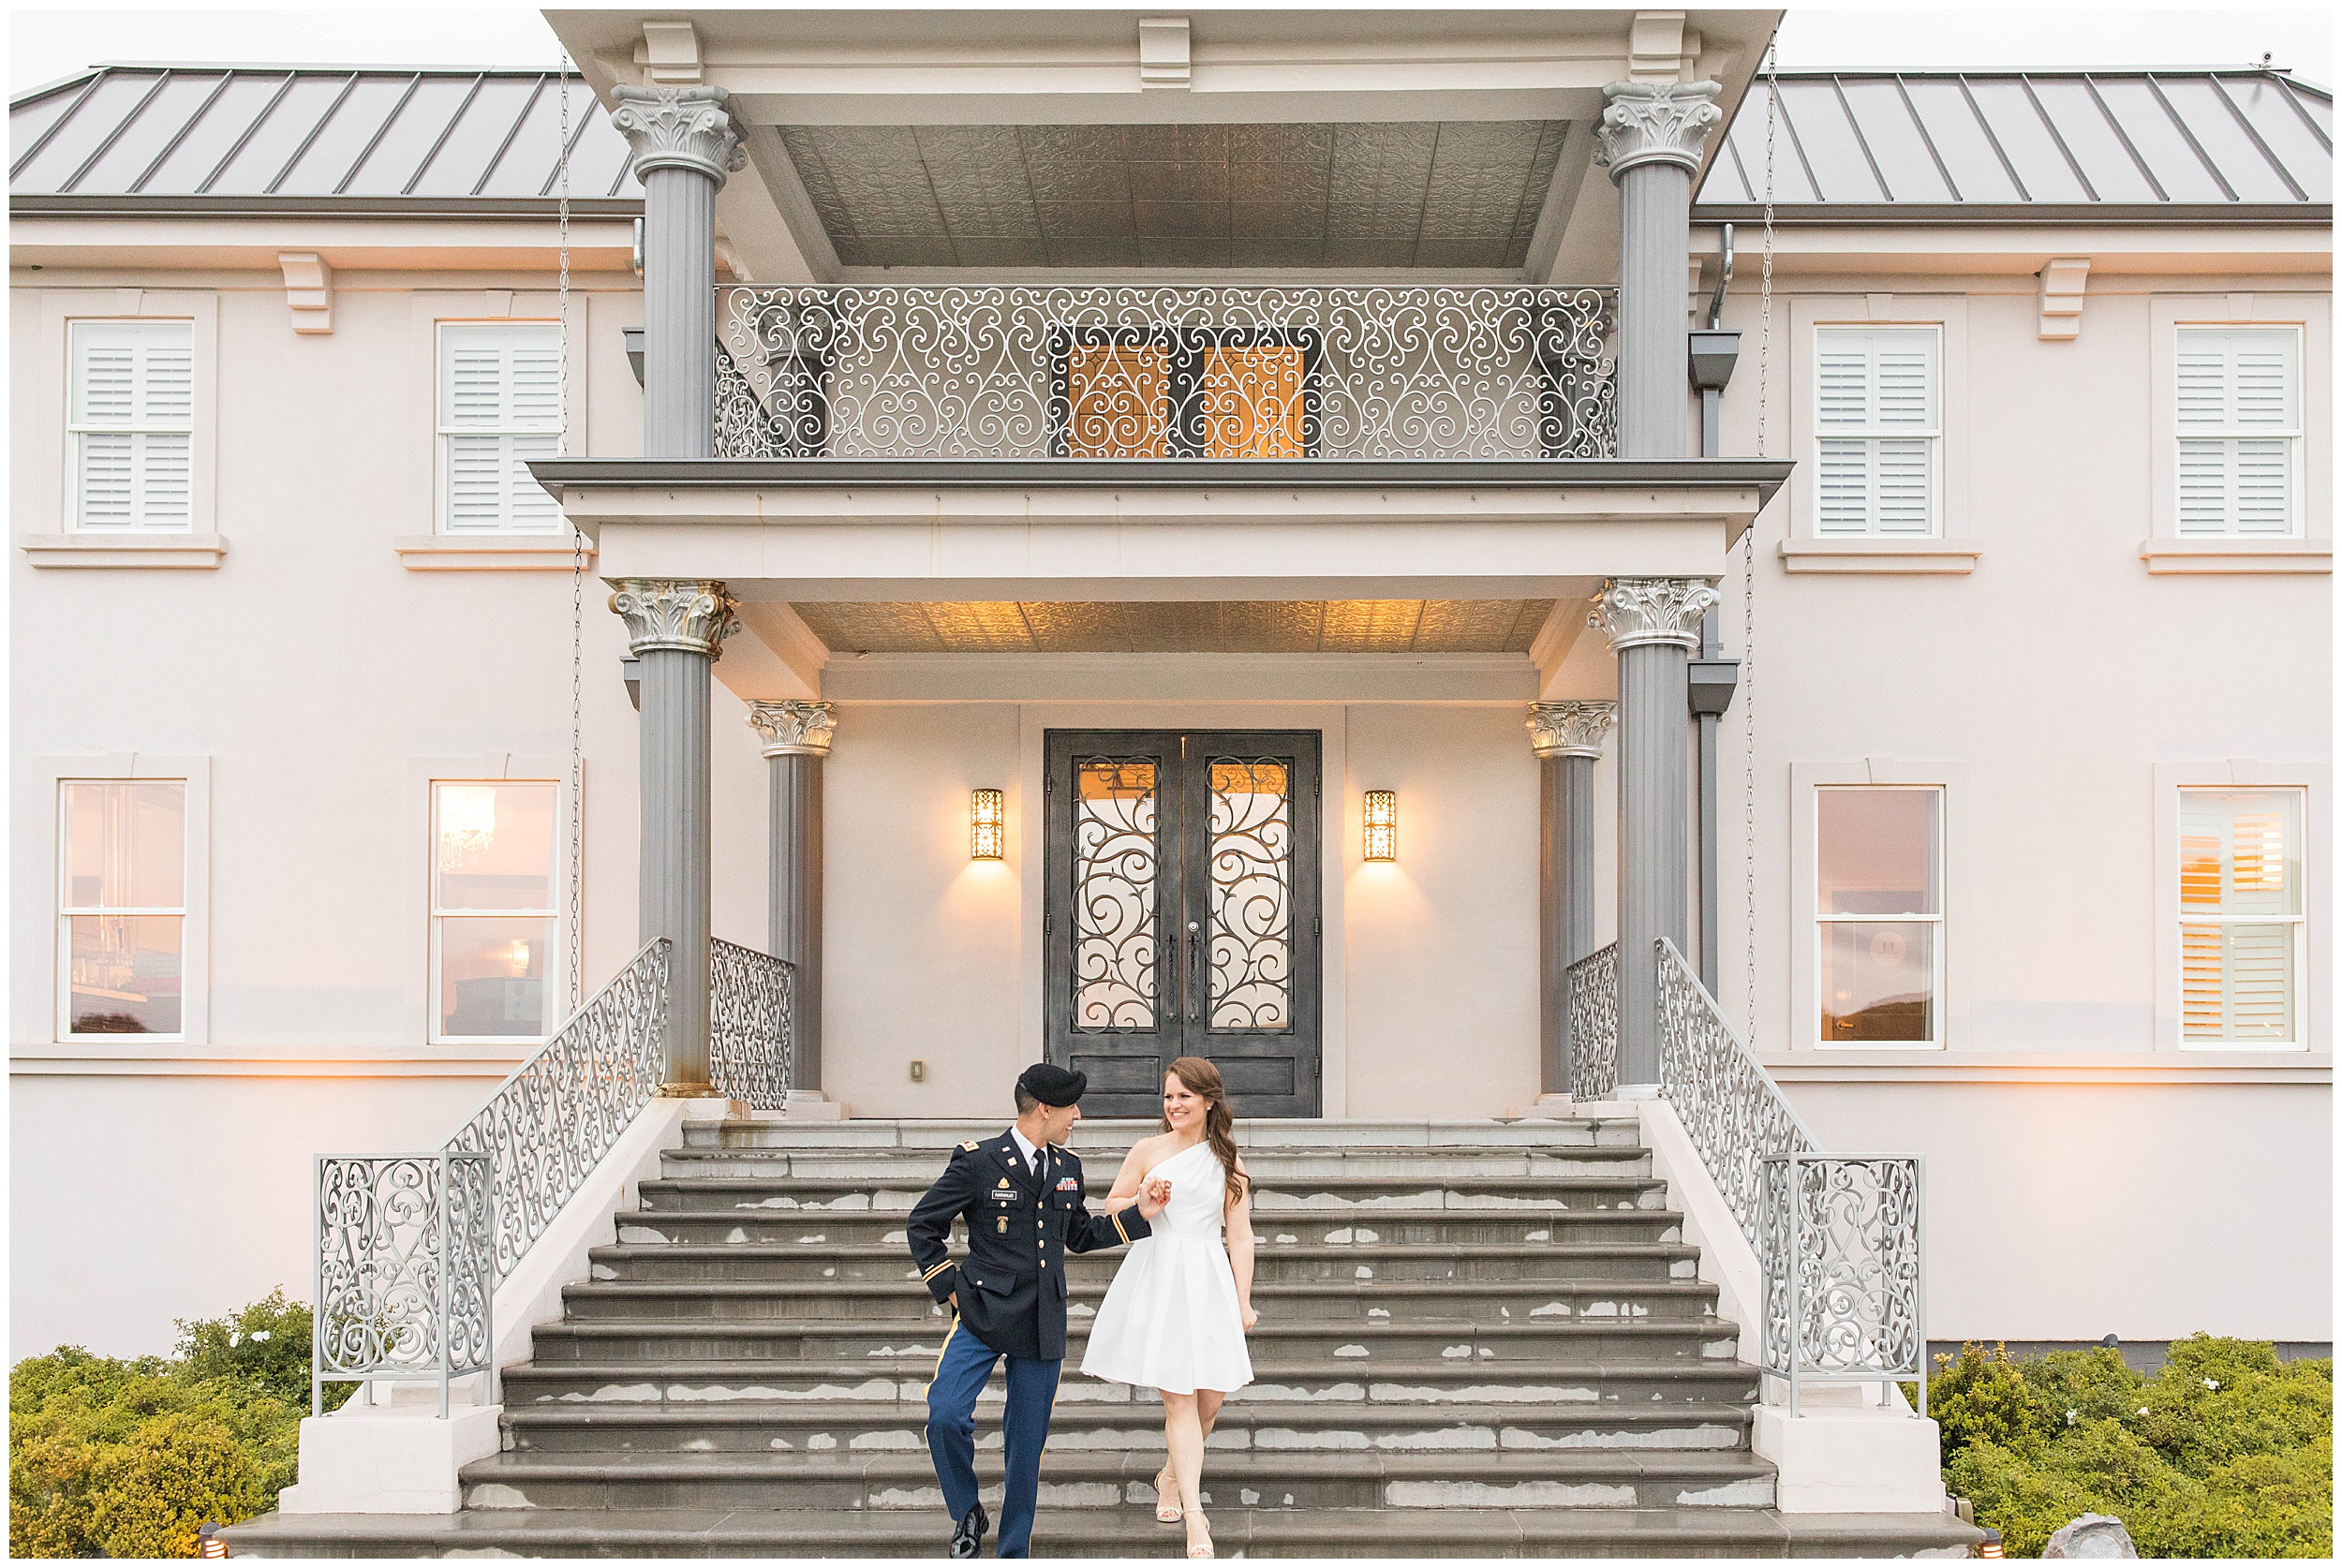 Willow Heights Mansion-San Jose Wedding Photographer-Engagement Session-Angela Sue Photography_0025.jpg